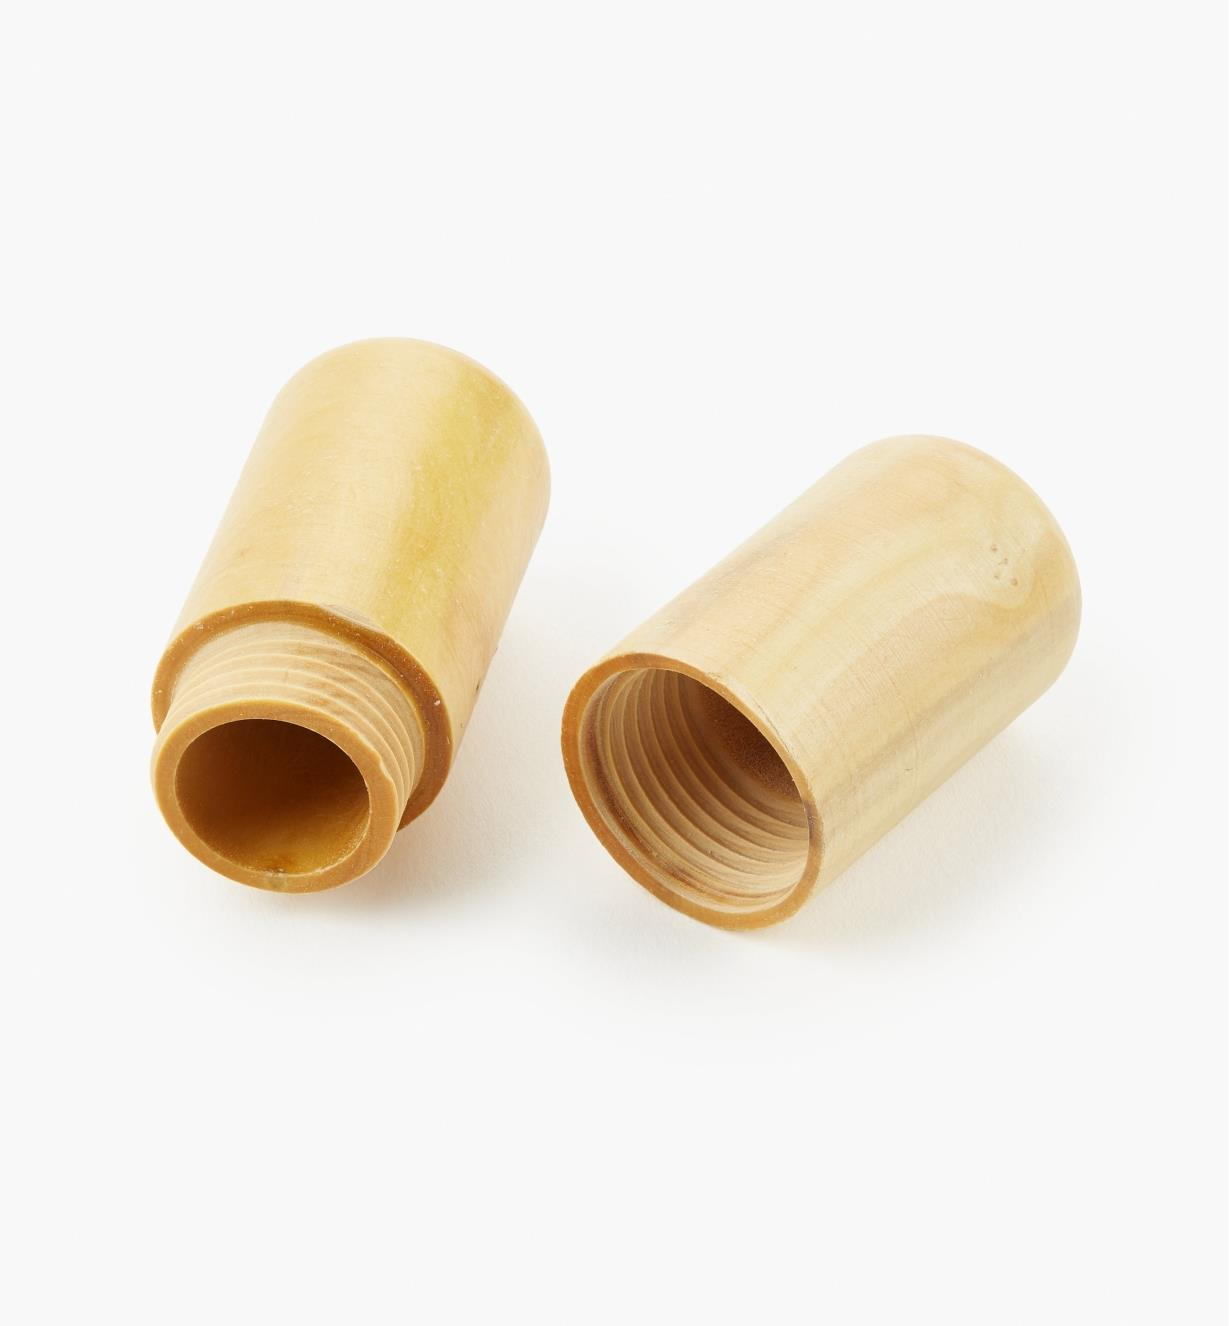 "45K2703 - 1"" x 3 3/8"" Boxwood Tube, each"